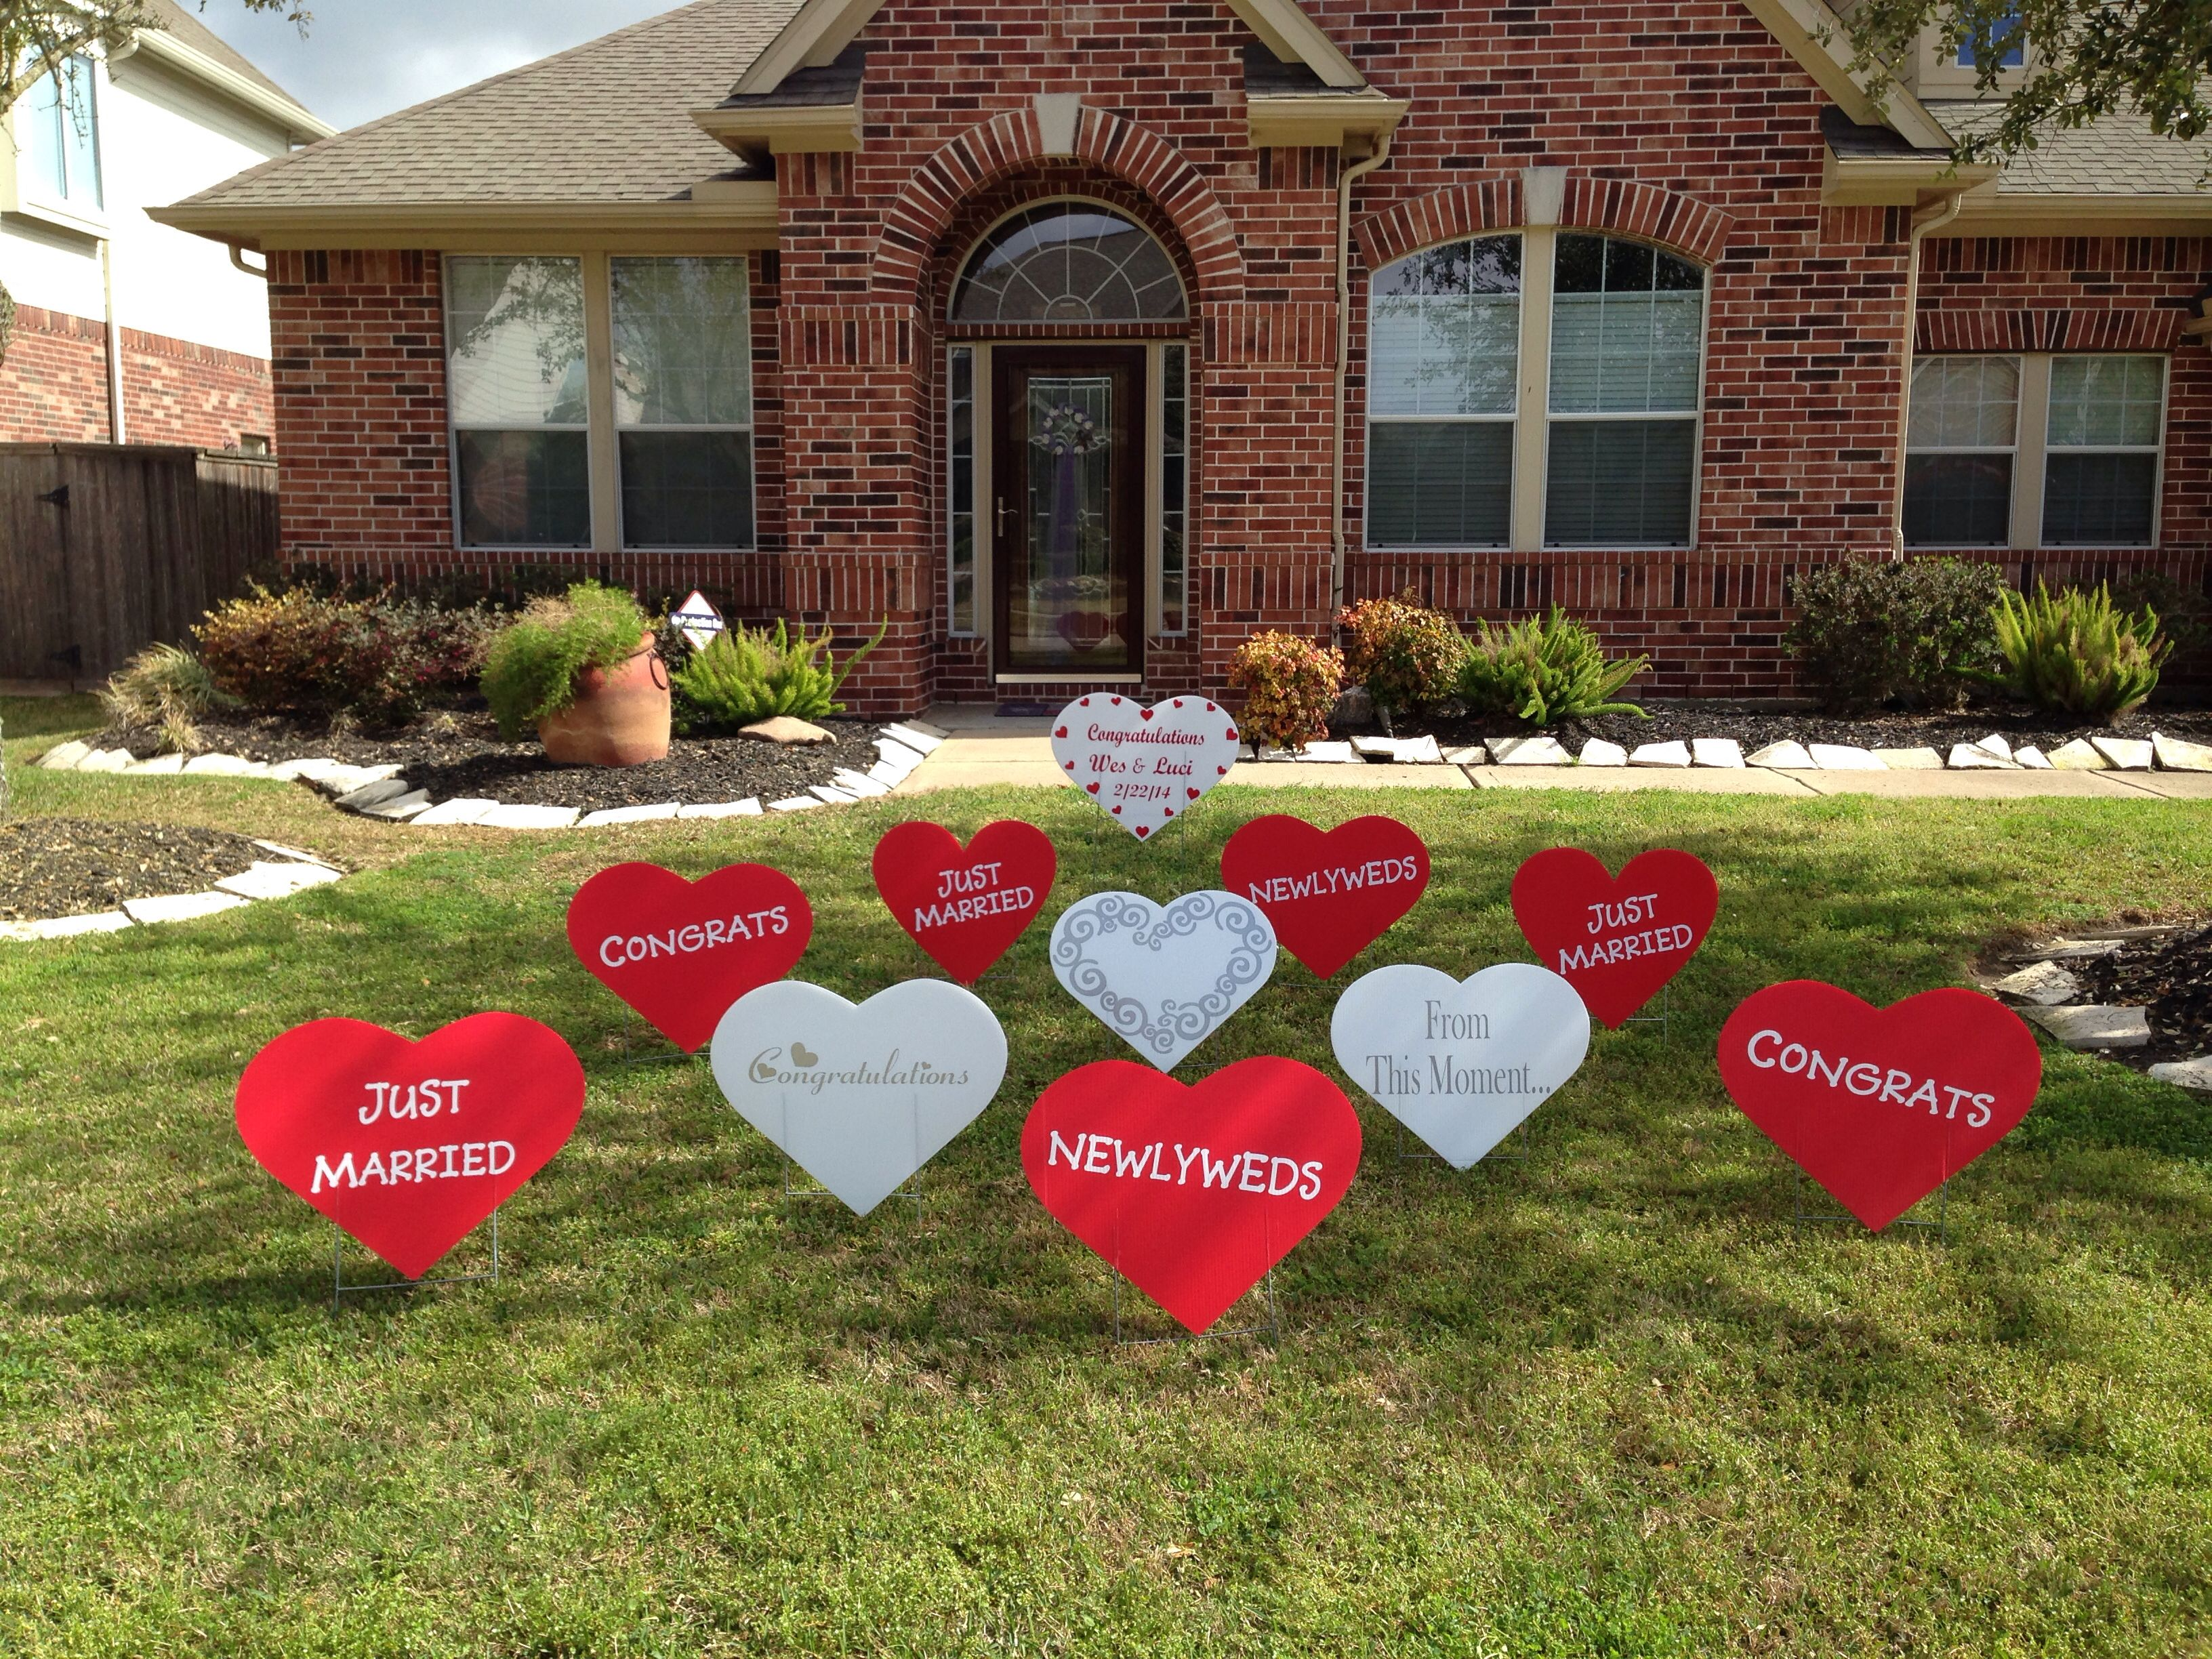 Newlywed Decorations Yard Display To Welcome The Couple Home From Their Honeymoon From Www